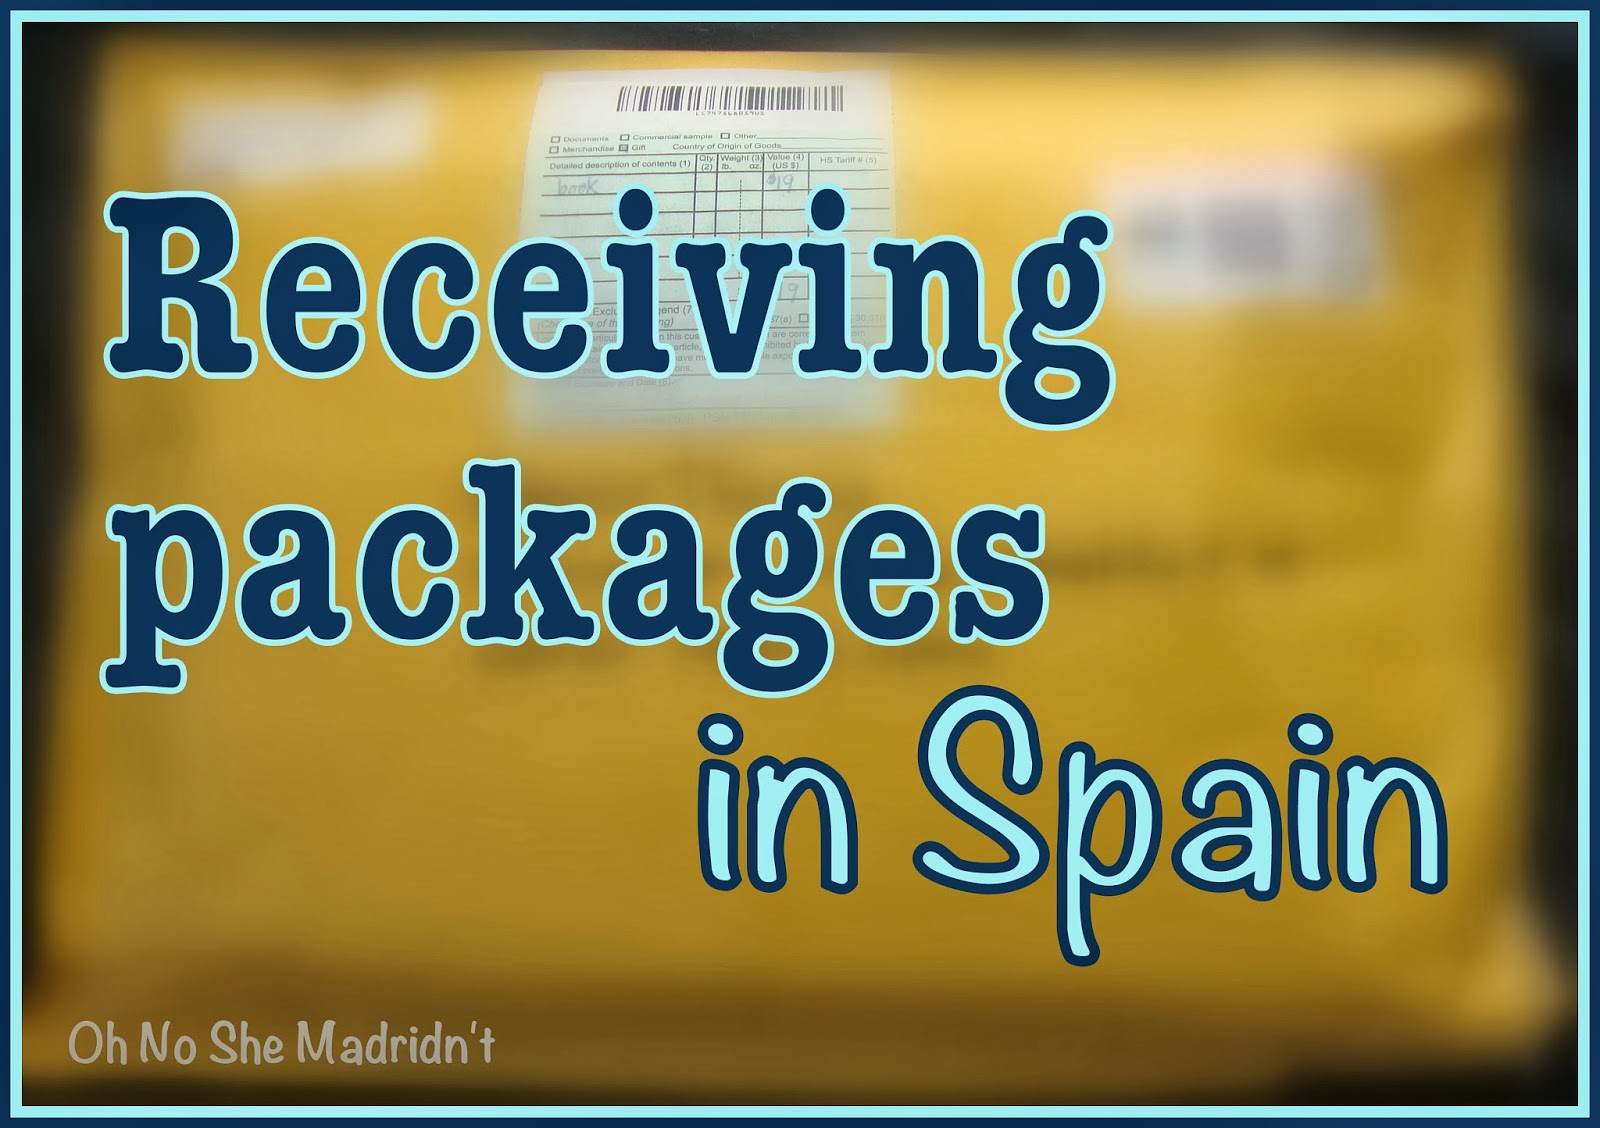 Receiving packages in Spain - How to